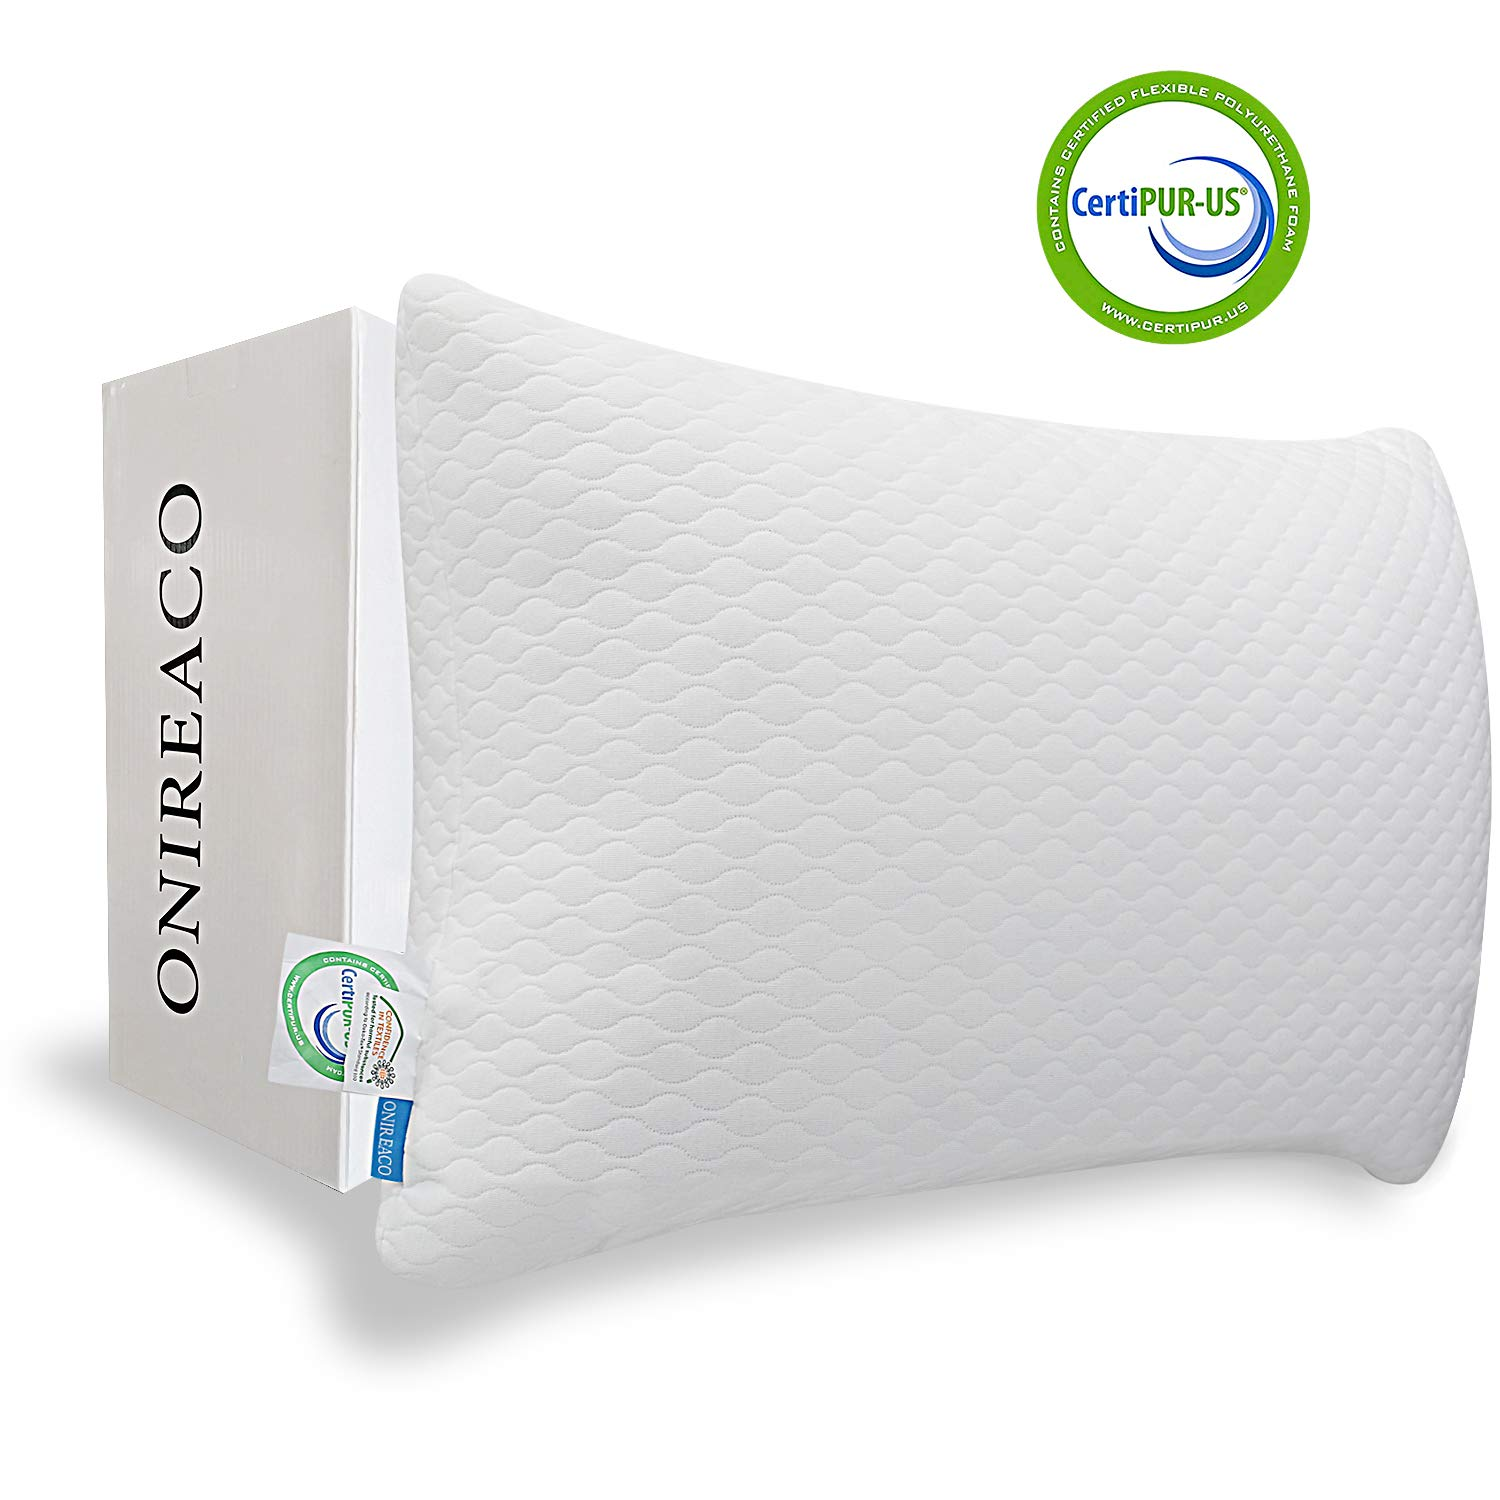 ONIREACO Shredded Bamboo Memory Foam Bed Pillows for Sleeping-Cooling Pillow Adjustable Height for Any Sleep Positions-Comfortable Breathable Hypoallergenic Washable Cover with Zipper(Queen Size)